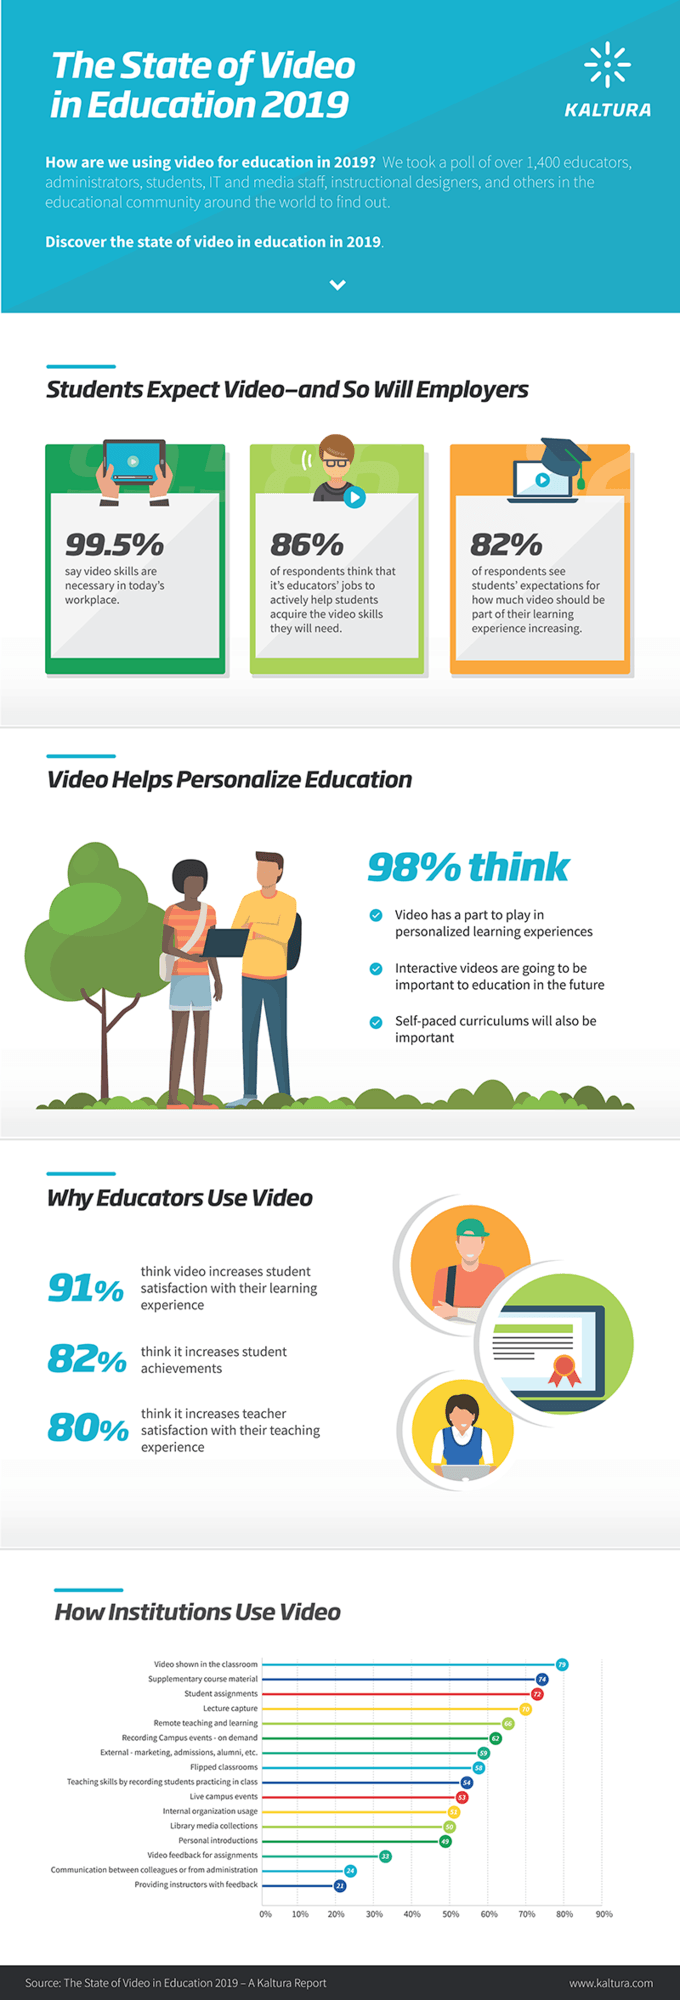 Infographic of the results of the State of Video in Education 2019 survey